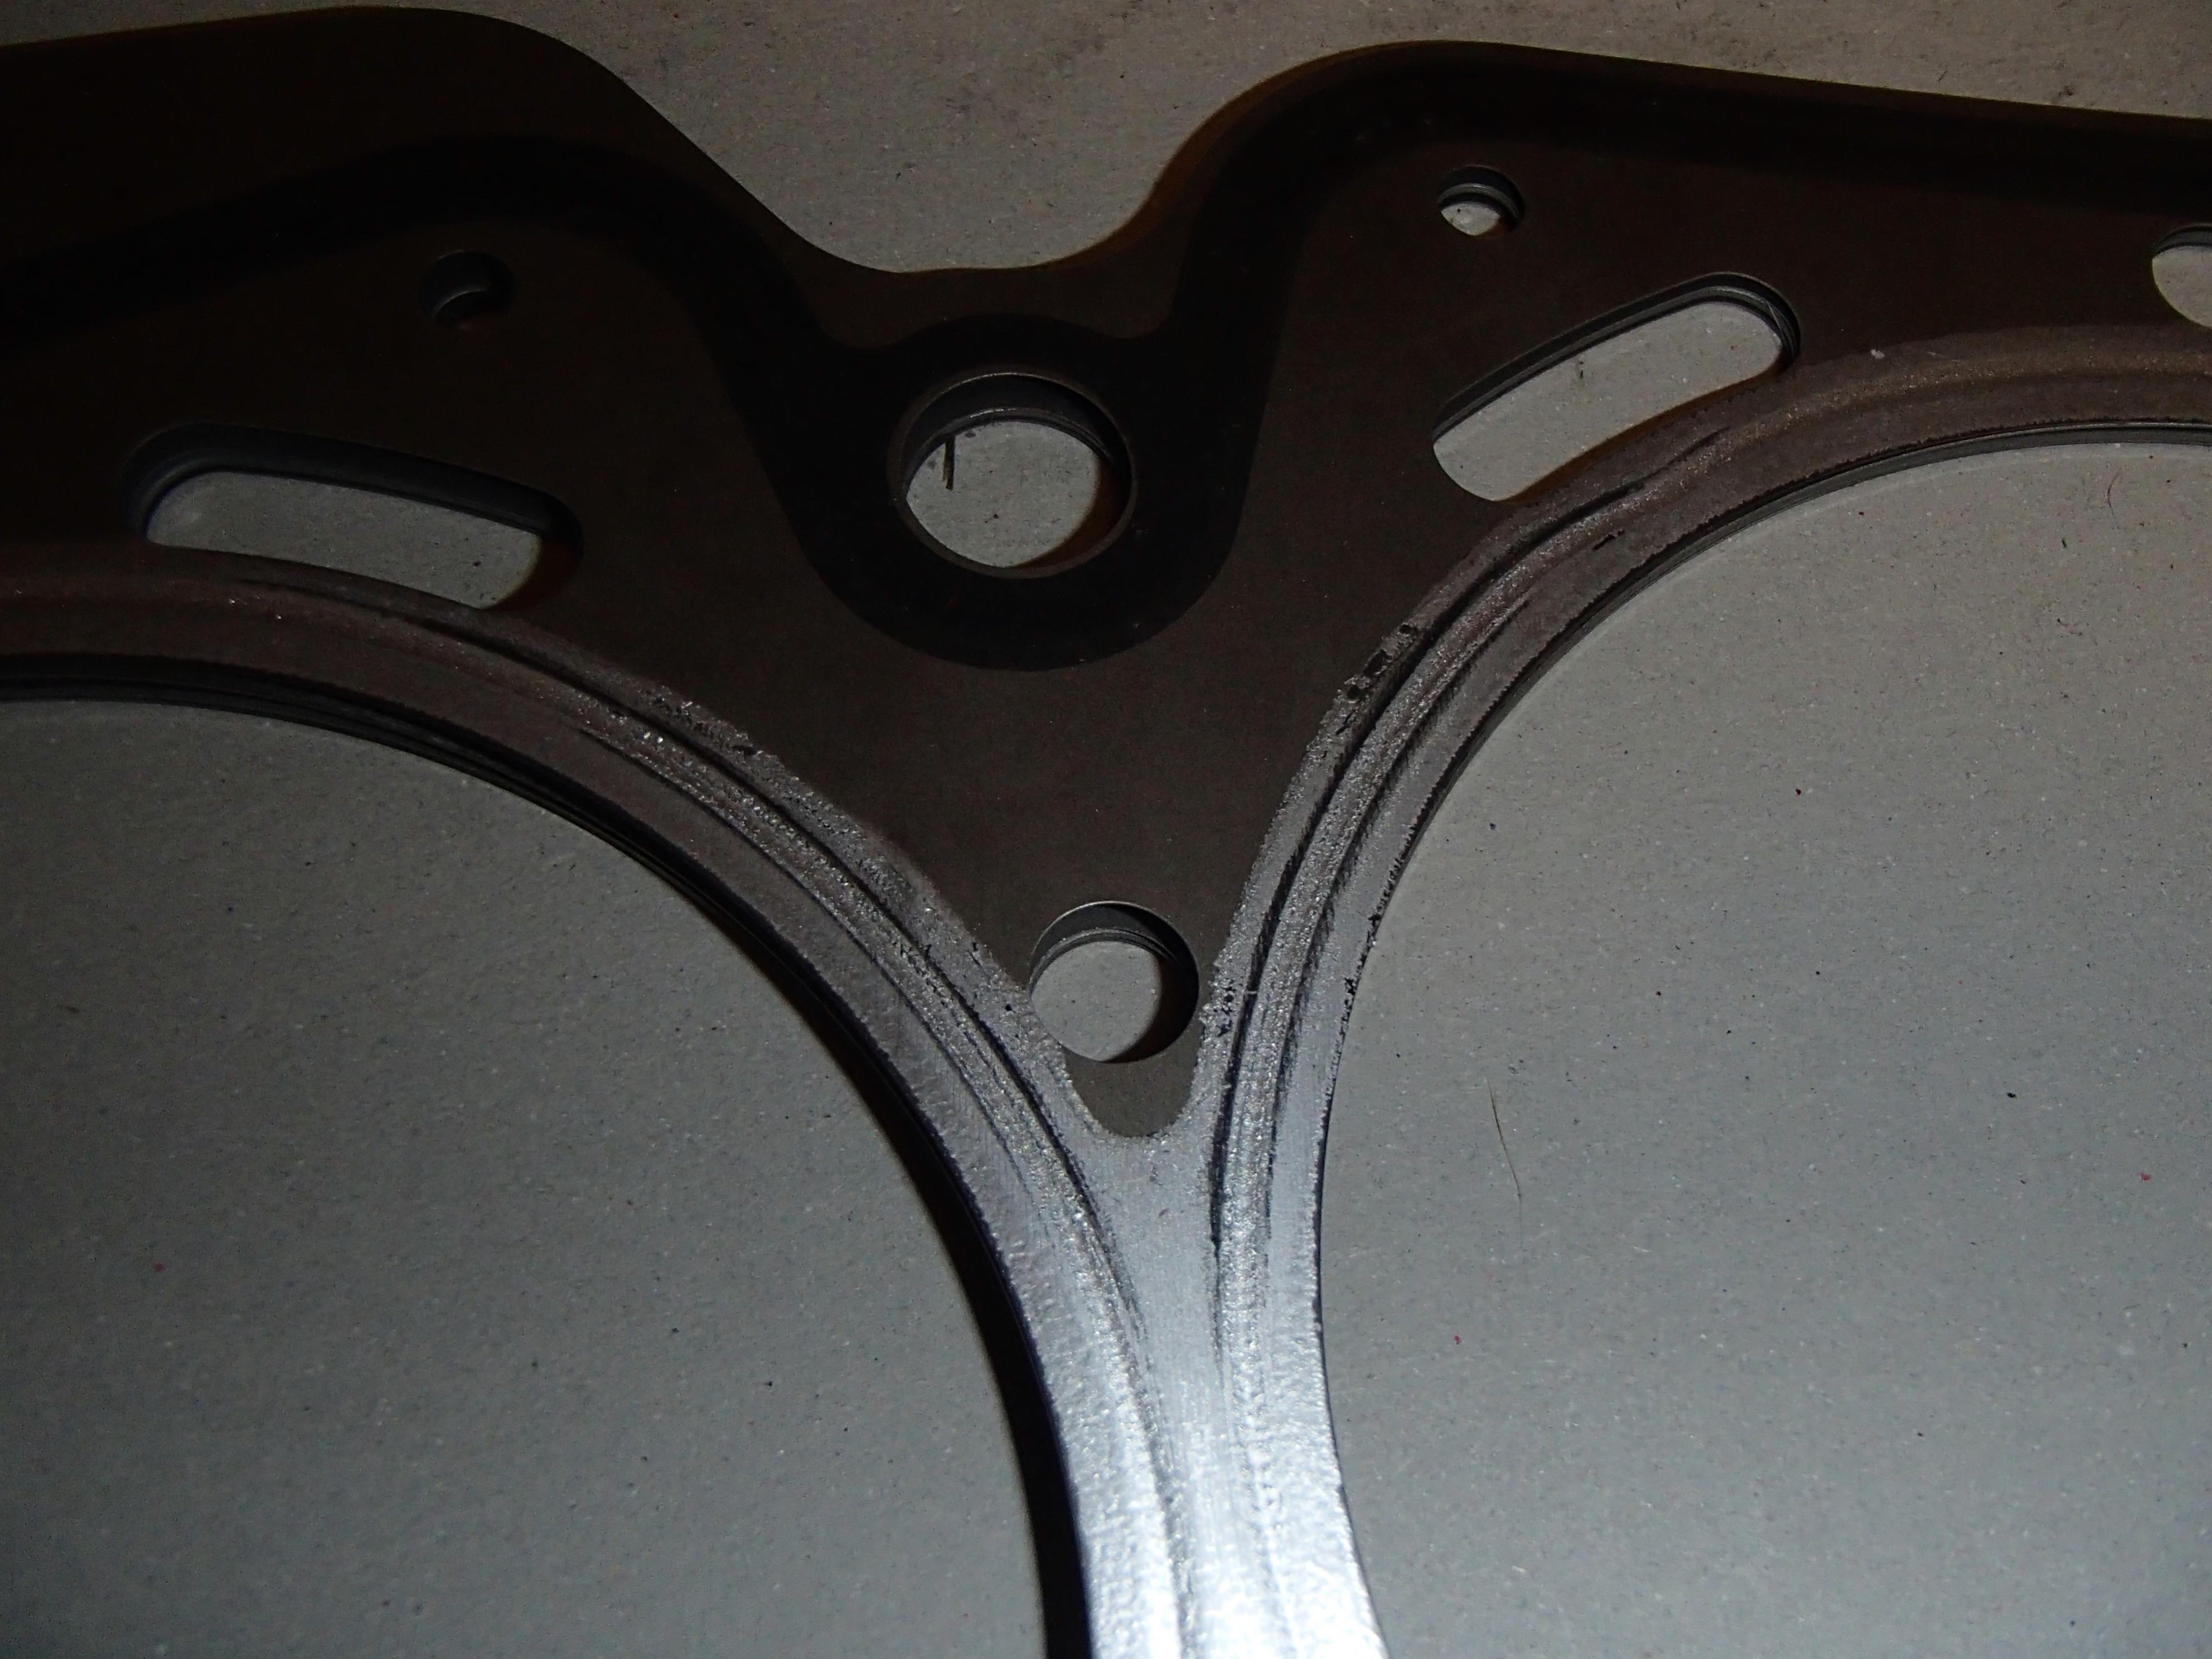 98 Subaru Ej25 Dohc Head Gasket Question Outback 1998 Click Image For Larger Version Name Pb031309 Views 248 Size 8326